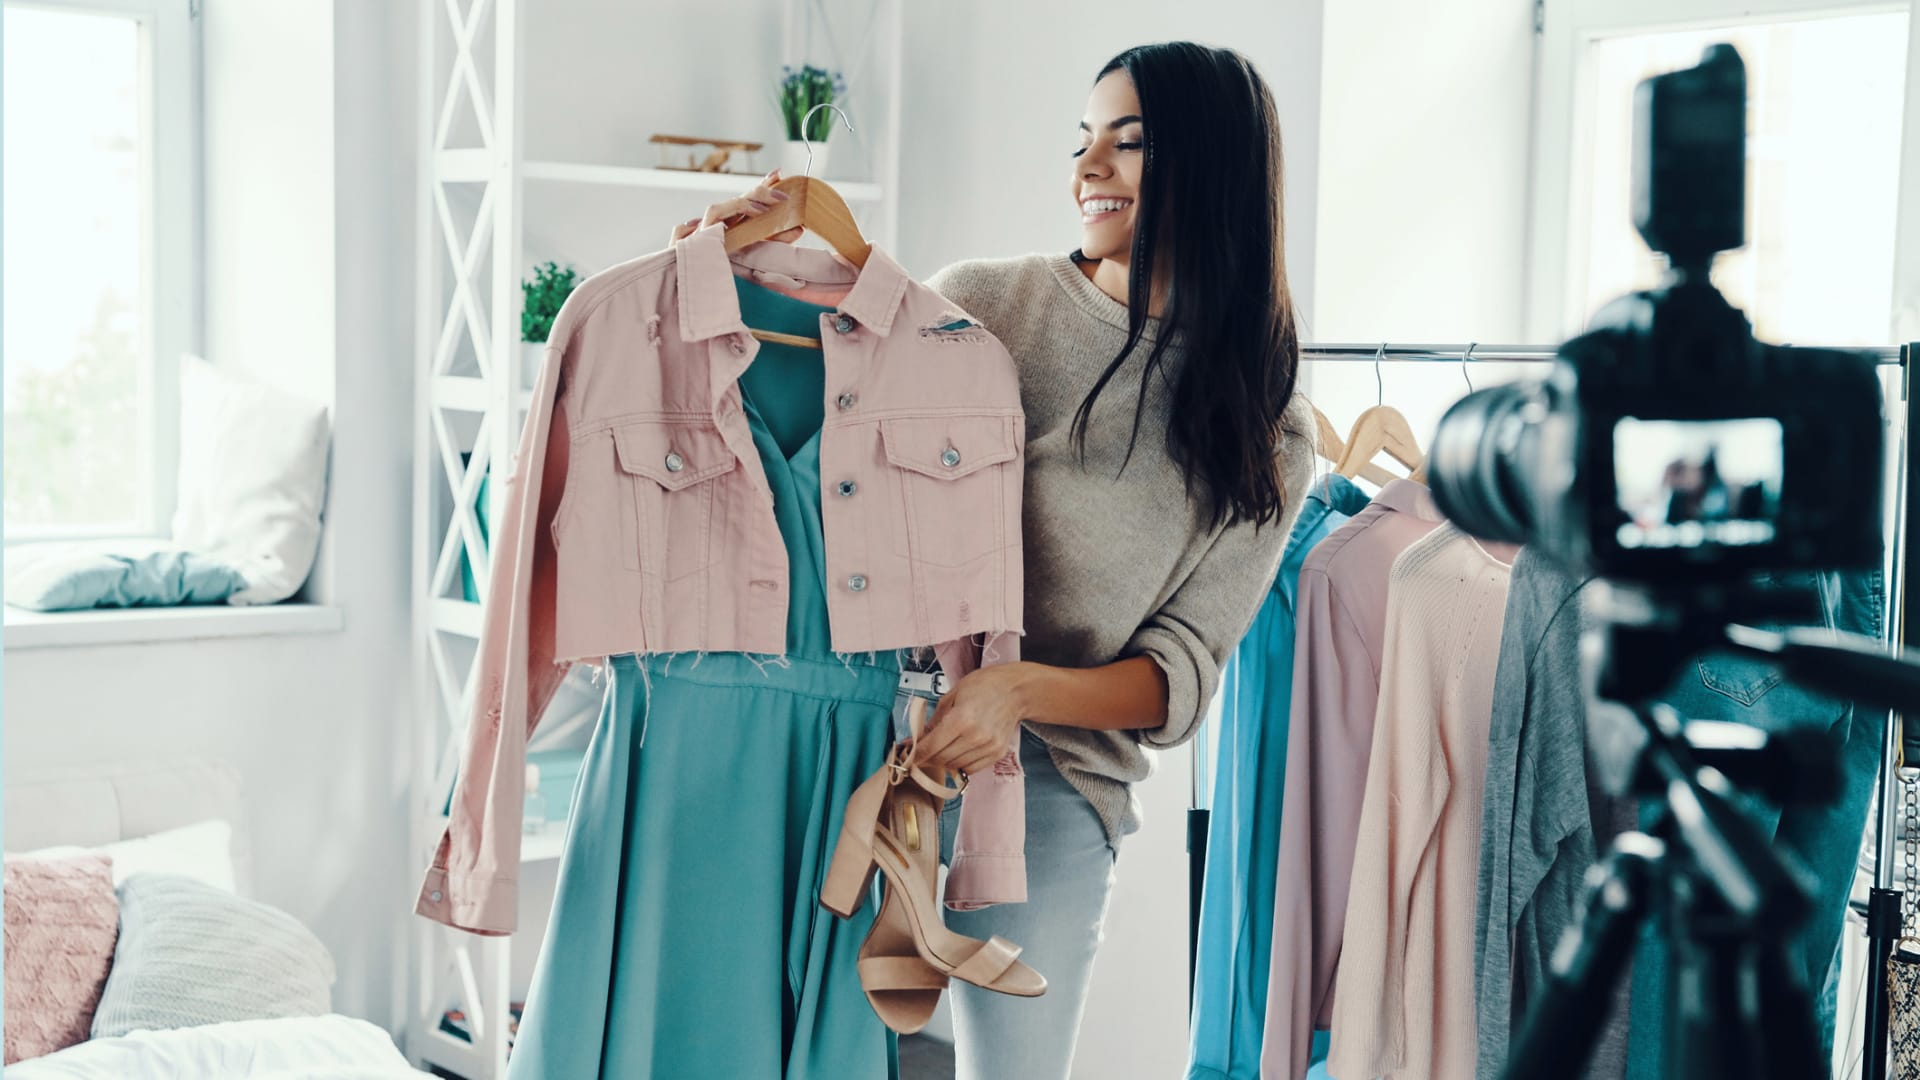 3 Ways to Reach and Engage Gen-Z Shoppers